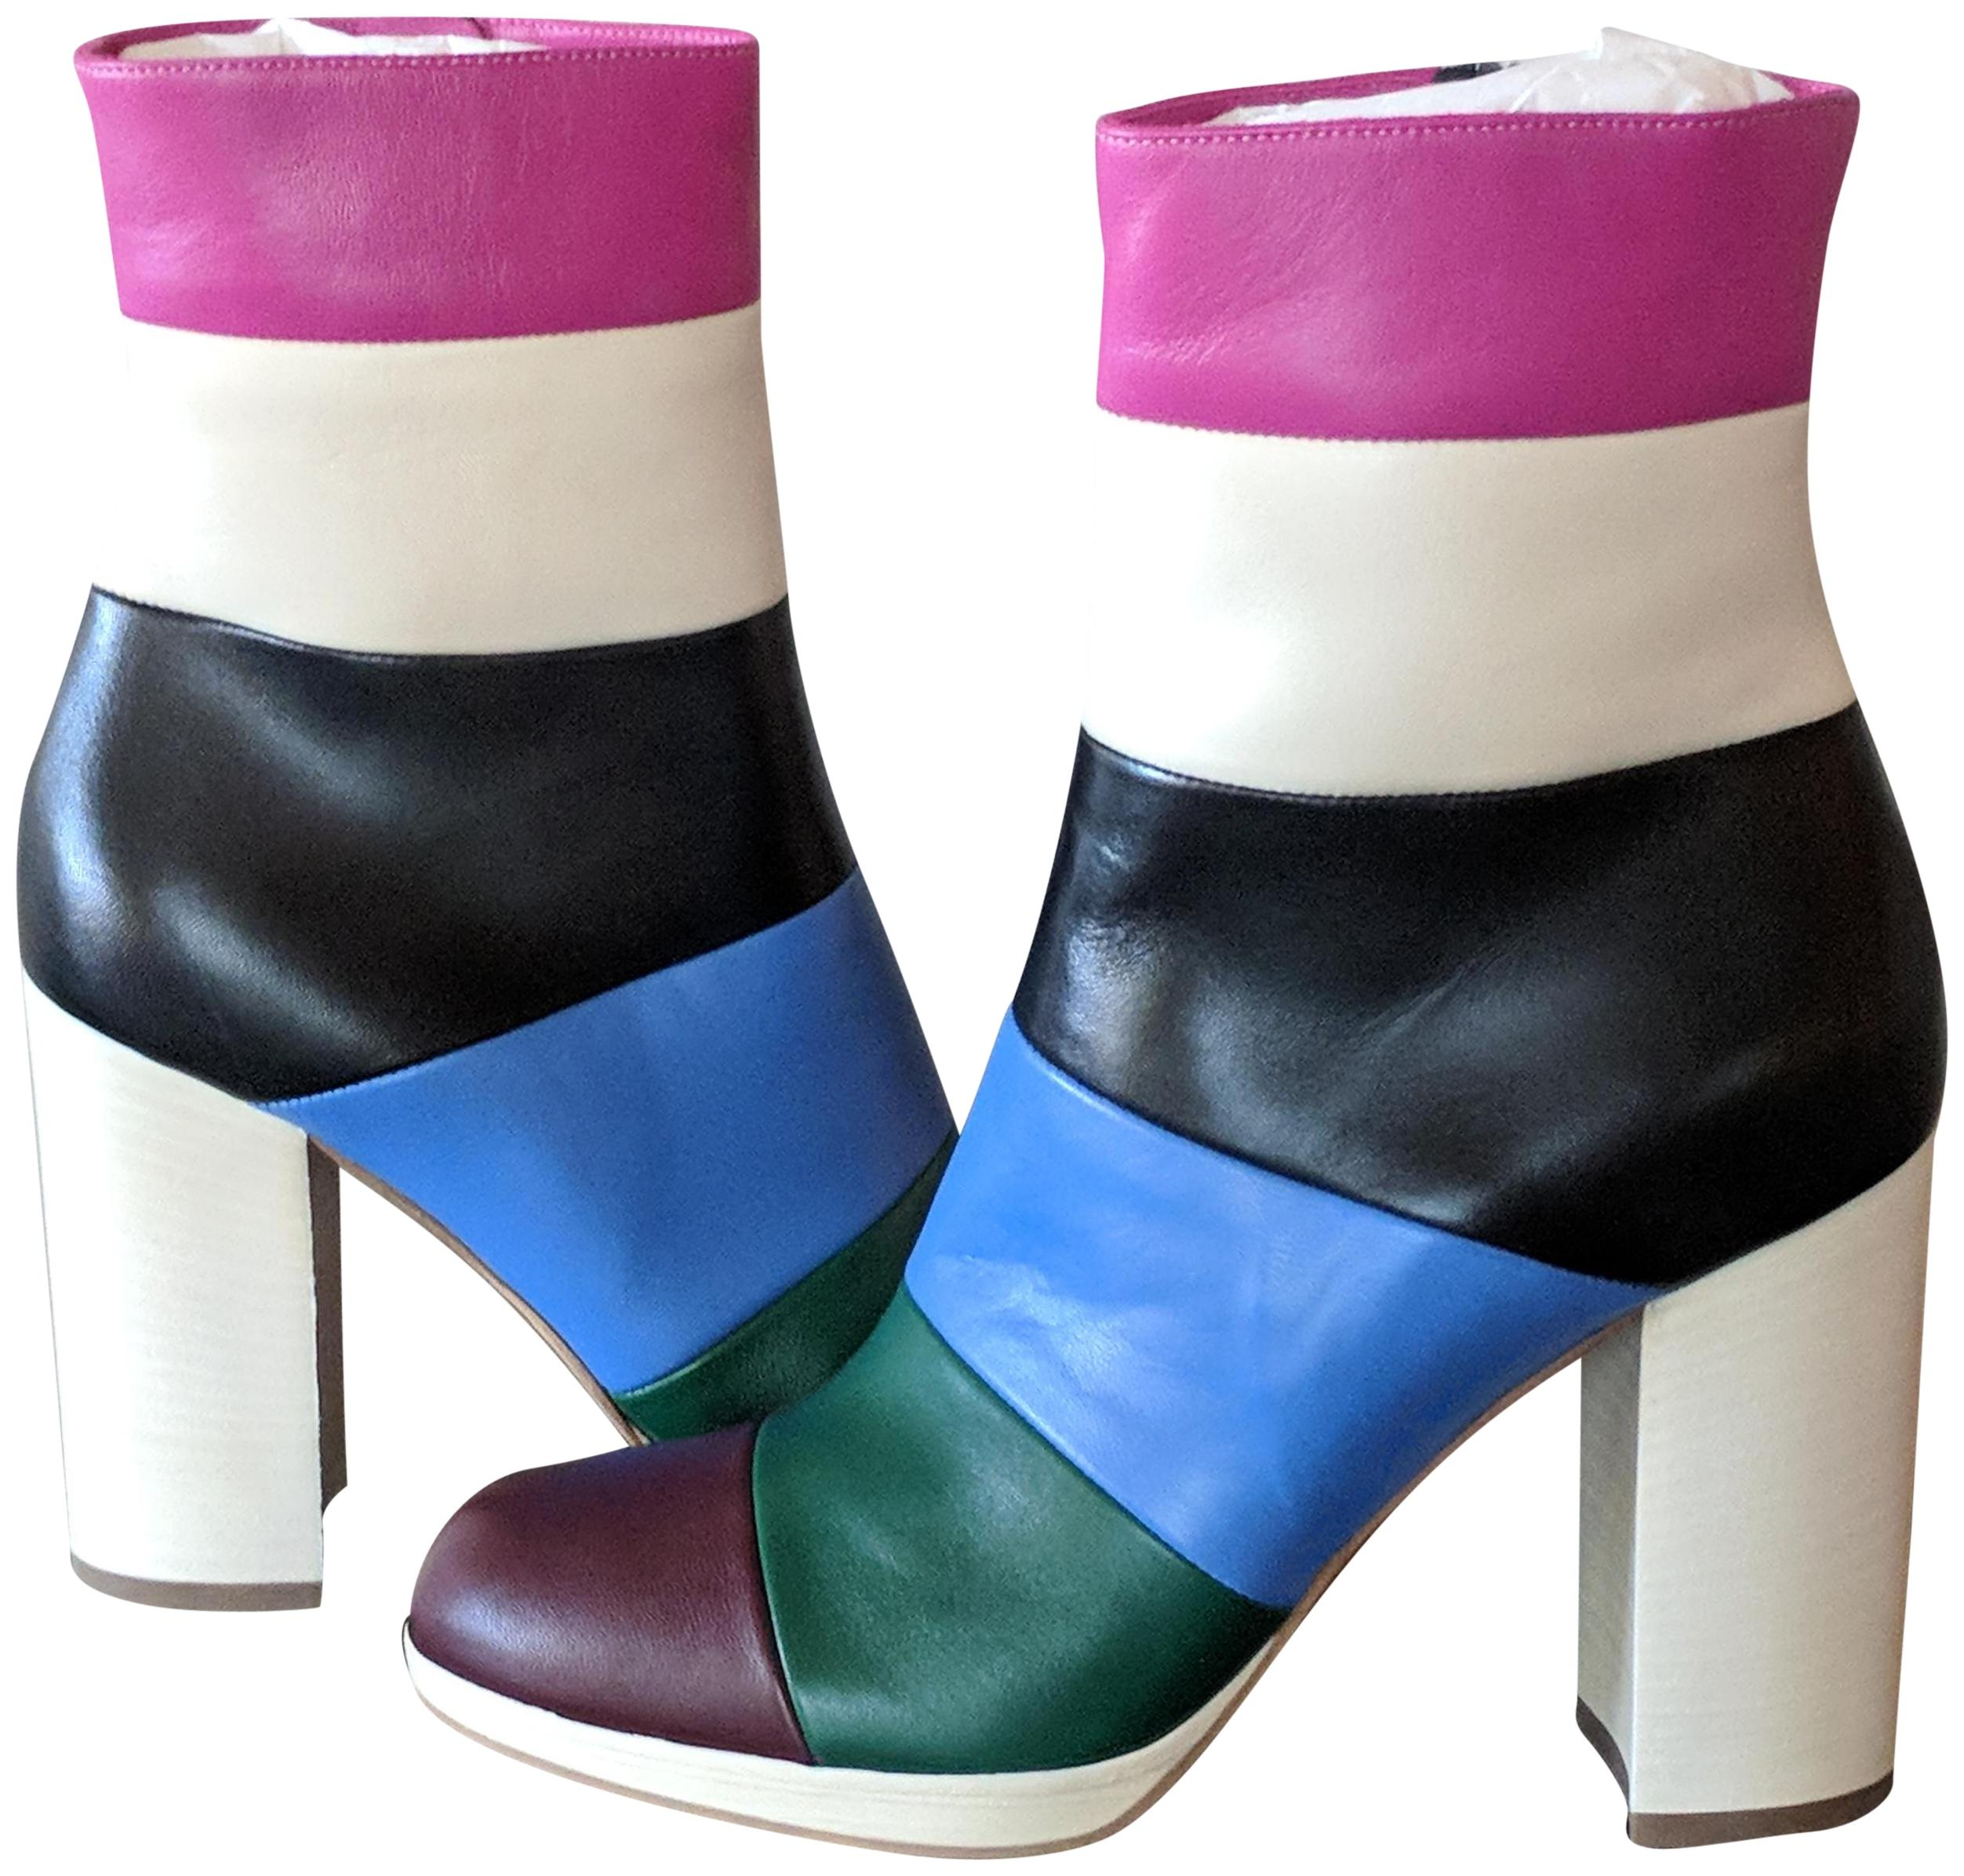 885a420dce31 Valentino Multicolor Striped Leather Ankle Boots Booties Size EU 36.5  (Approx. (Approx. Christian Louboutin ...